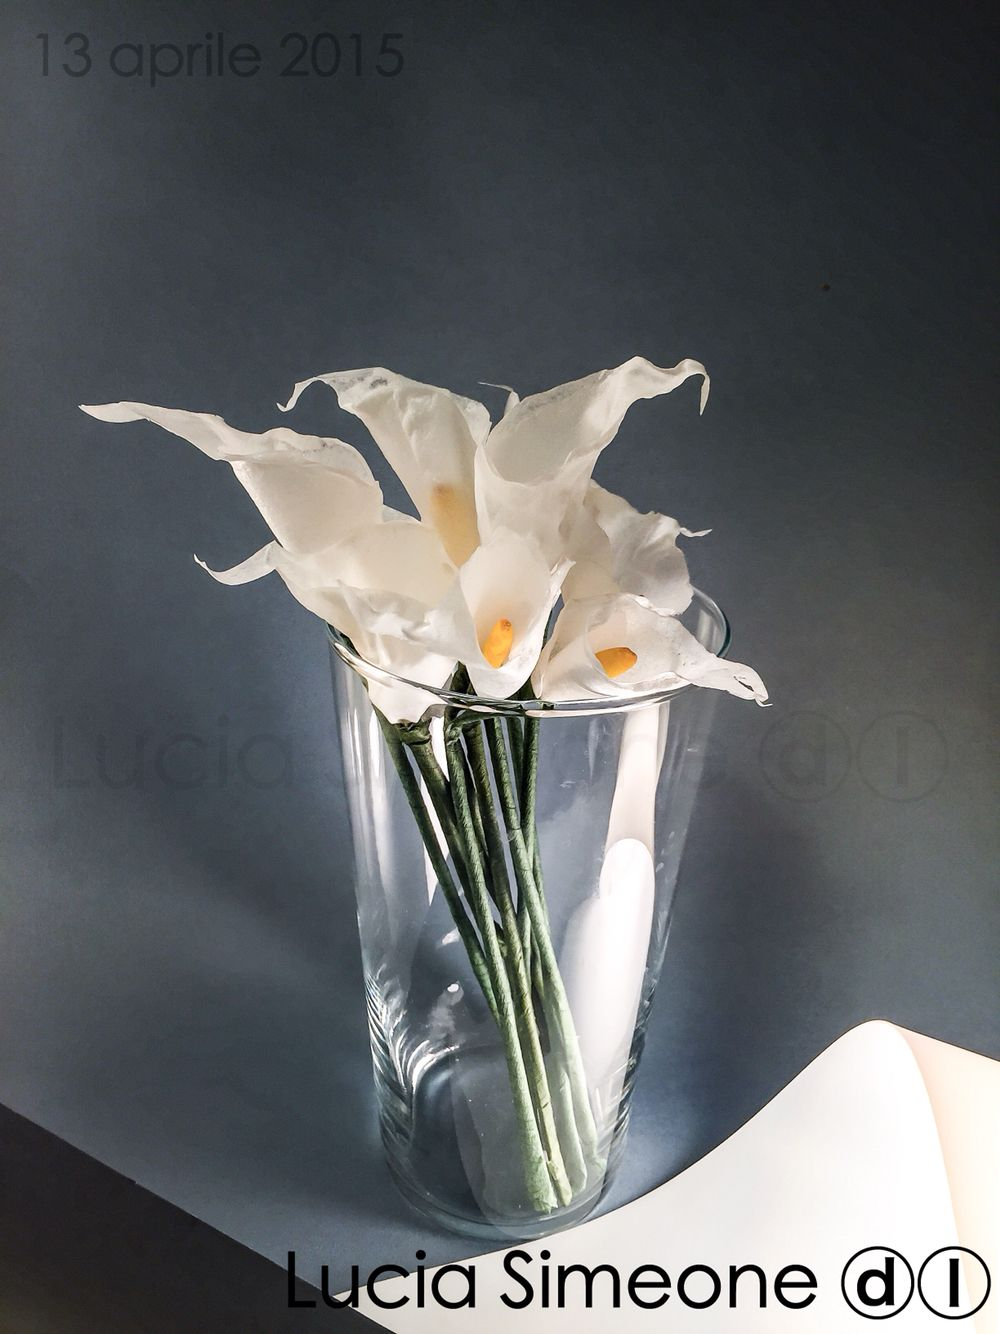 Calla. Painted wafer paper flowers di Lucia Simeone ⓓⓛ  #waferpaper #waferpaperflower #luciasimeone #fioriostia